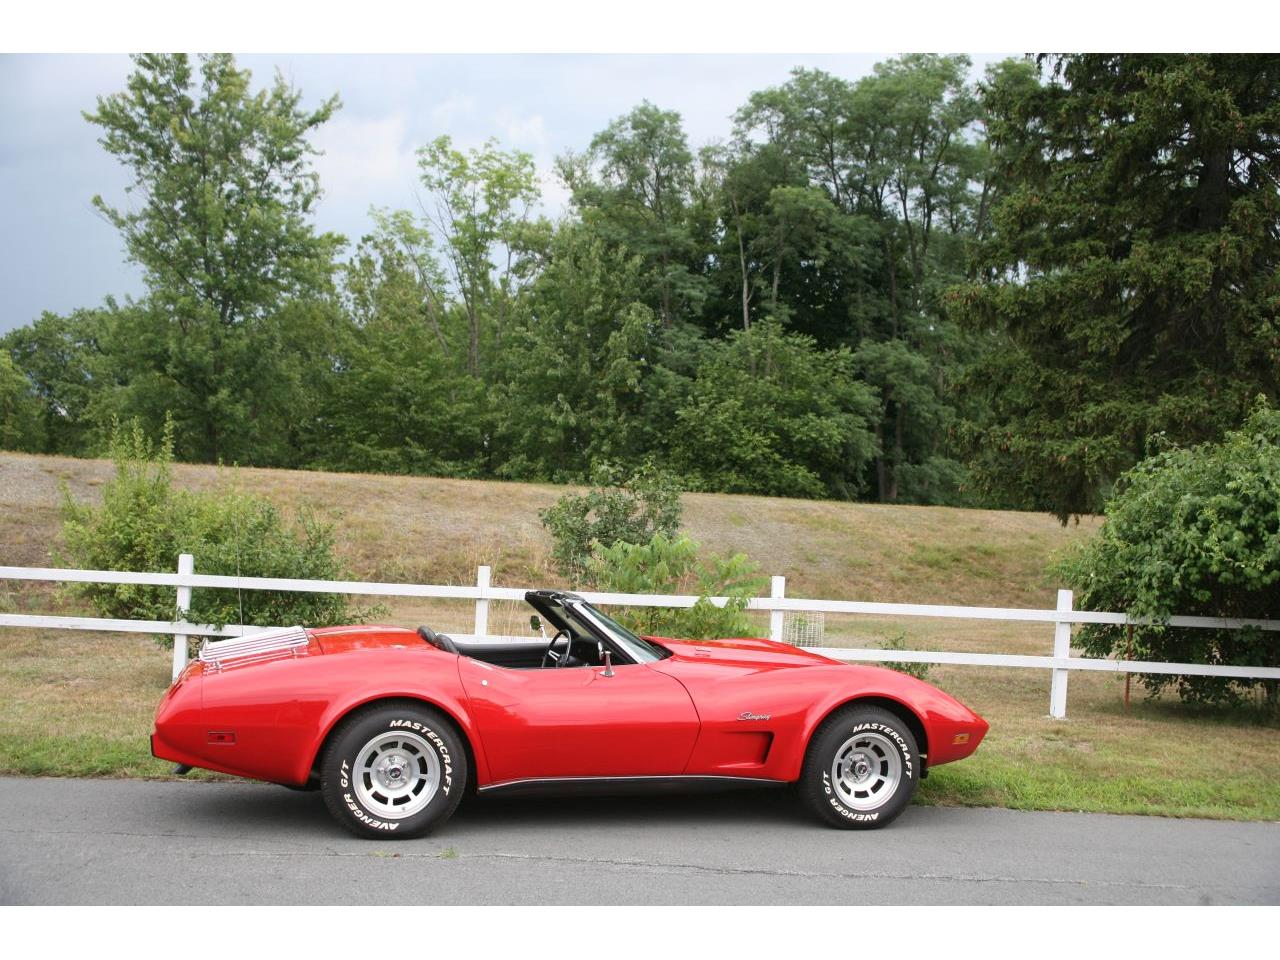 Large Picture of 1975 Chevrolet Corvette located in Old Forge Pennsylvania - $26,900.00 - GCY5